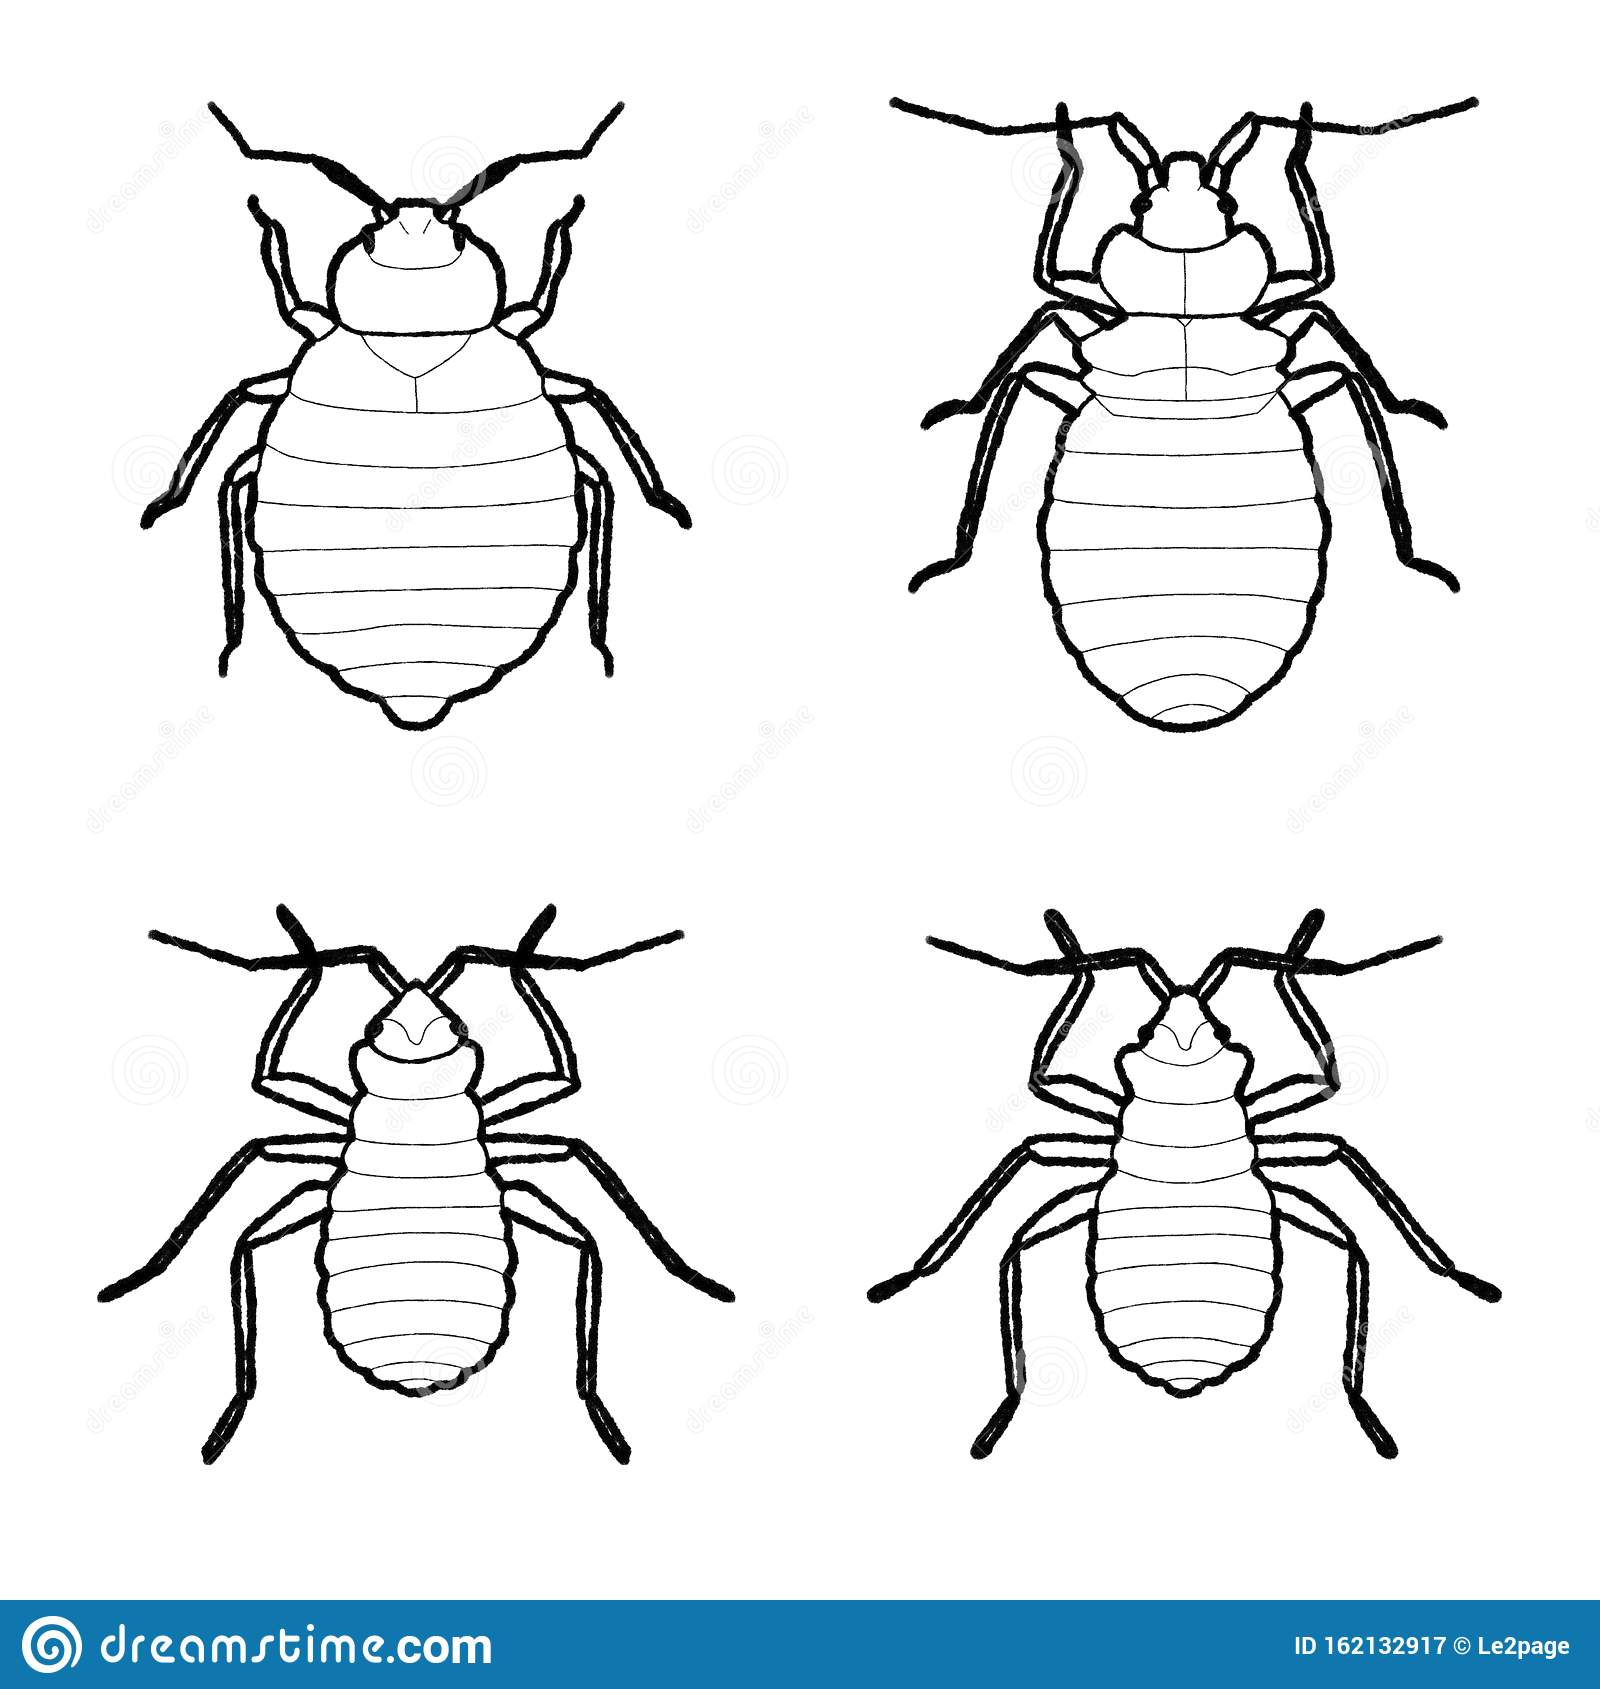 Bed Bug Cartoon Stock Illustrations 284 Bed Bug Cartoon Stock Illustrations Vectors Clipart Dreamstime